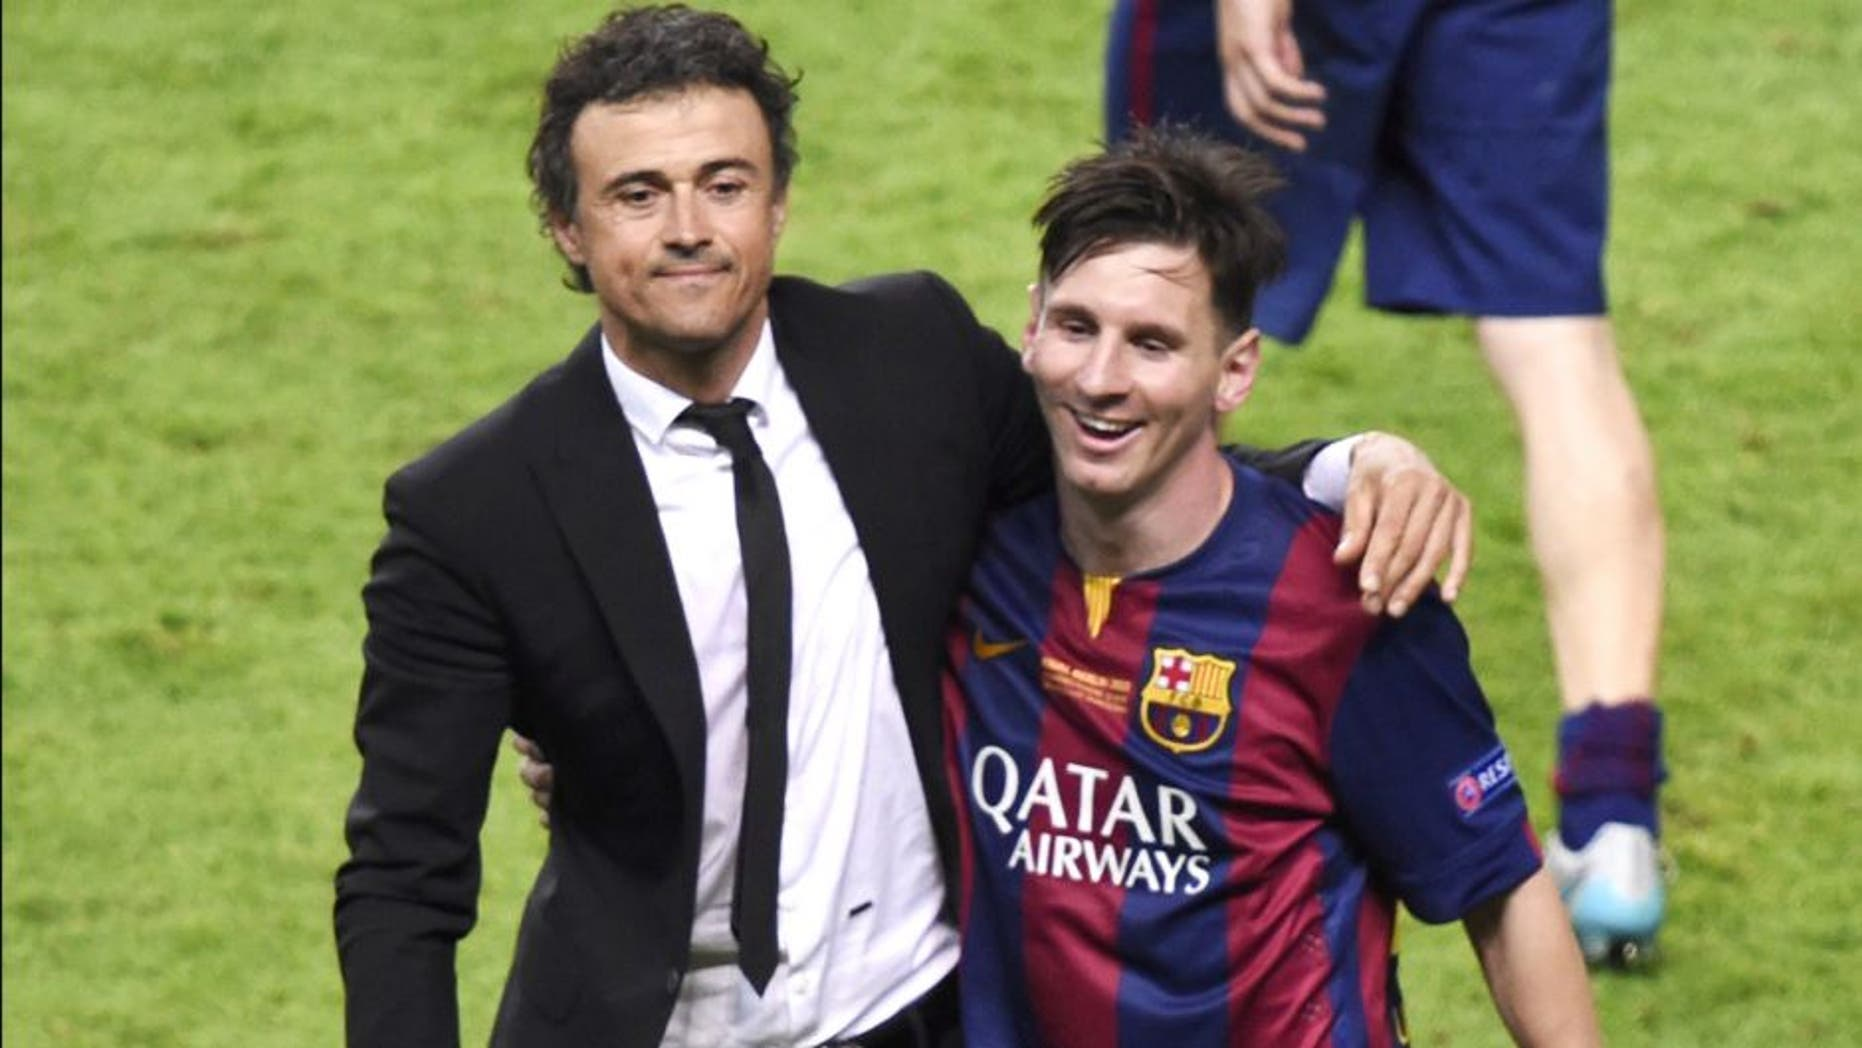 Barcelona's coach Luis Enrique (L) and Barcelona's Argentinian forward Lionel Messi celebrate after the UEFA Champions League Final football match between Juventus and FC Barcelona at the Olympic Stadium in Berlin on June 6, 2015. FC Barcelona won the match 1-3. AFP PHOTO / ODD ANDERSEN (Photo credit should read ODD ANDERSEN/AFP/Getty Images)